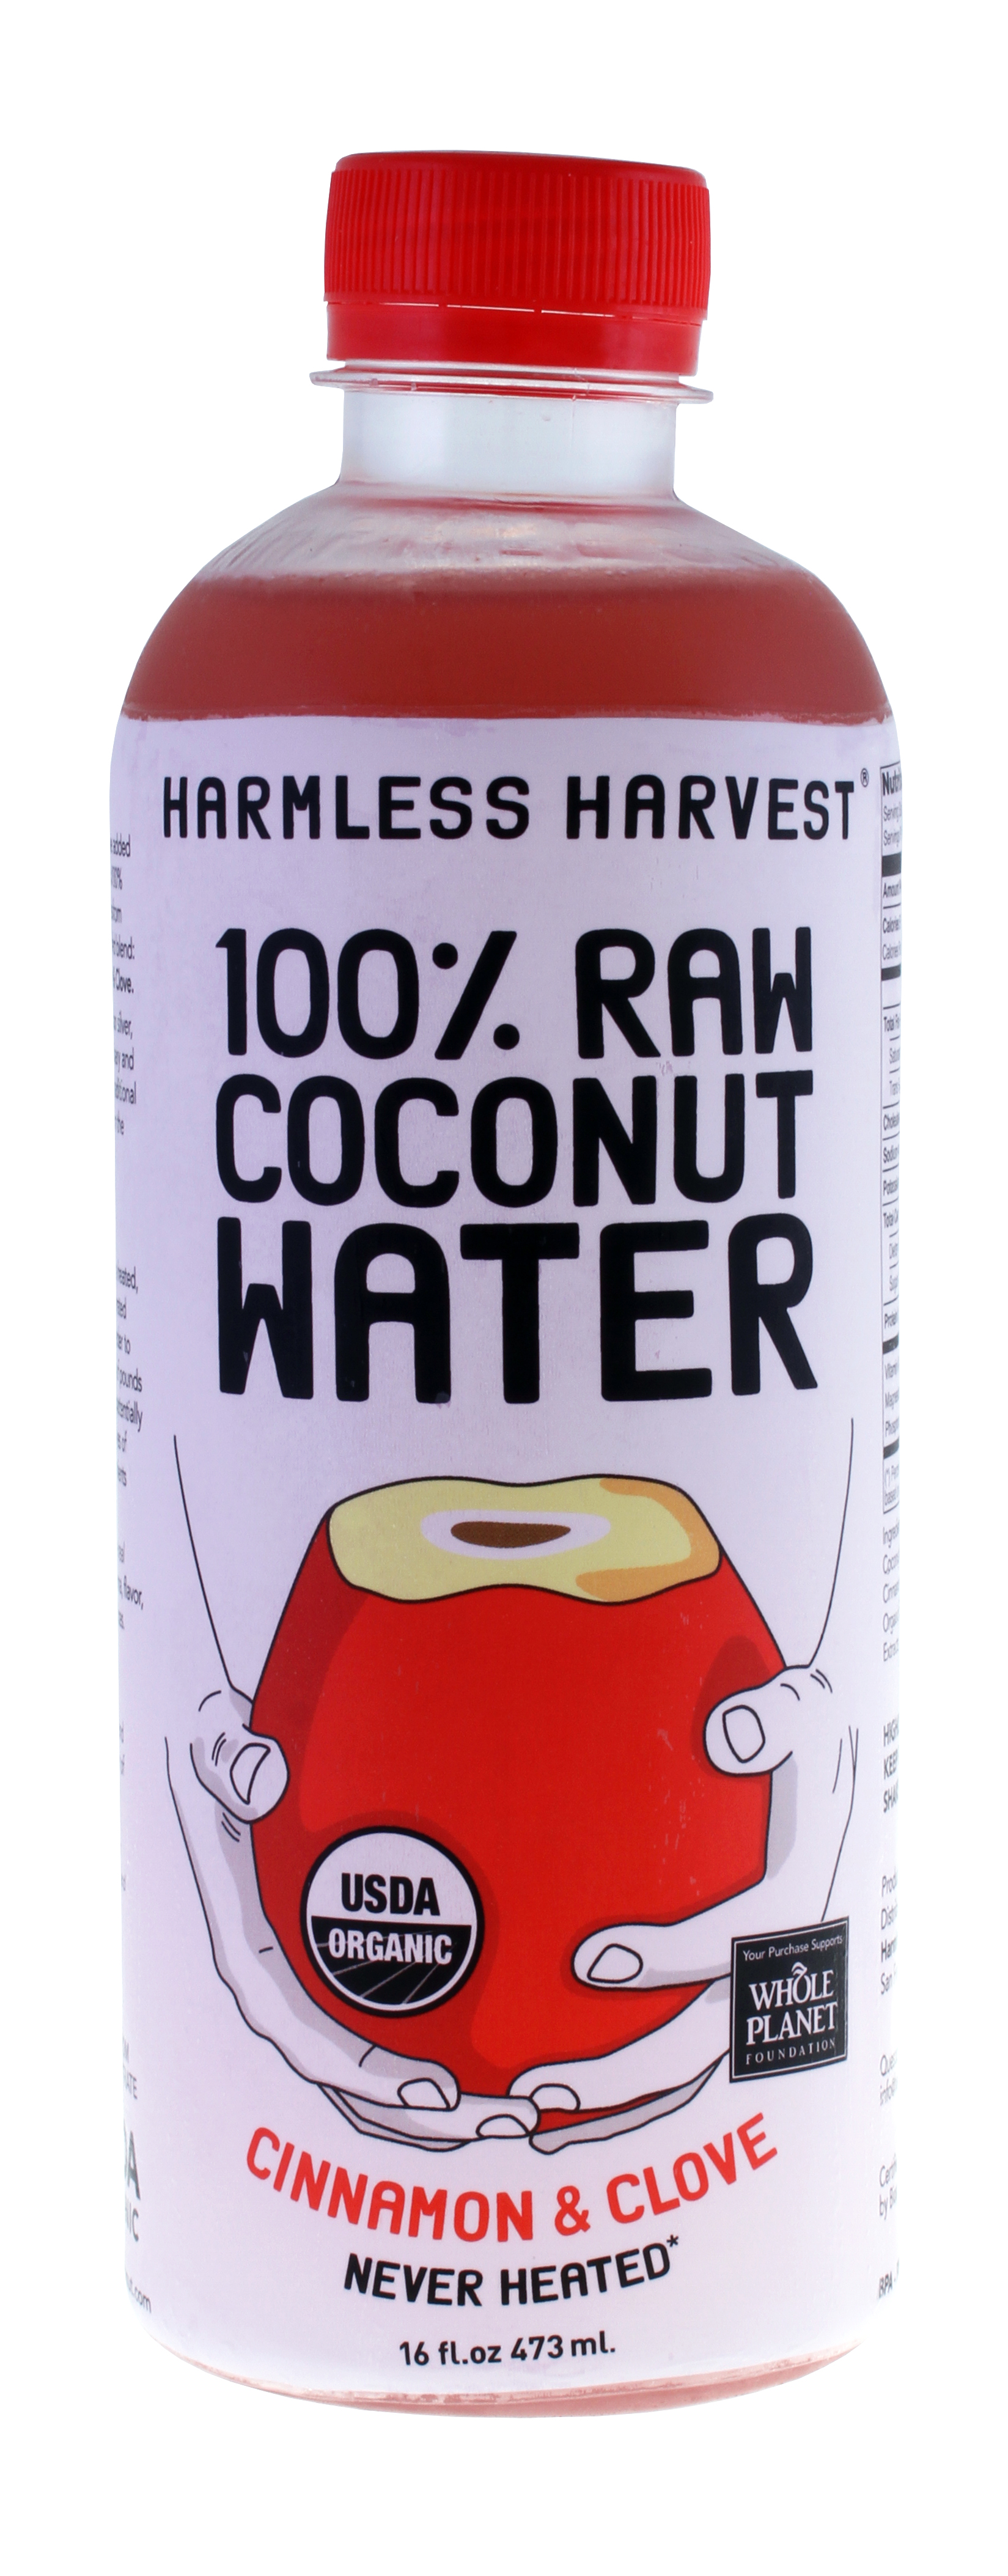 Harmless Harvest Launches 100% Raw Coconut Water with ...